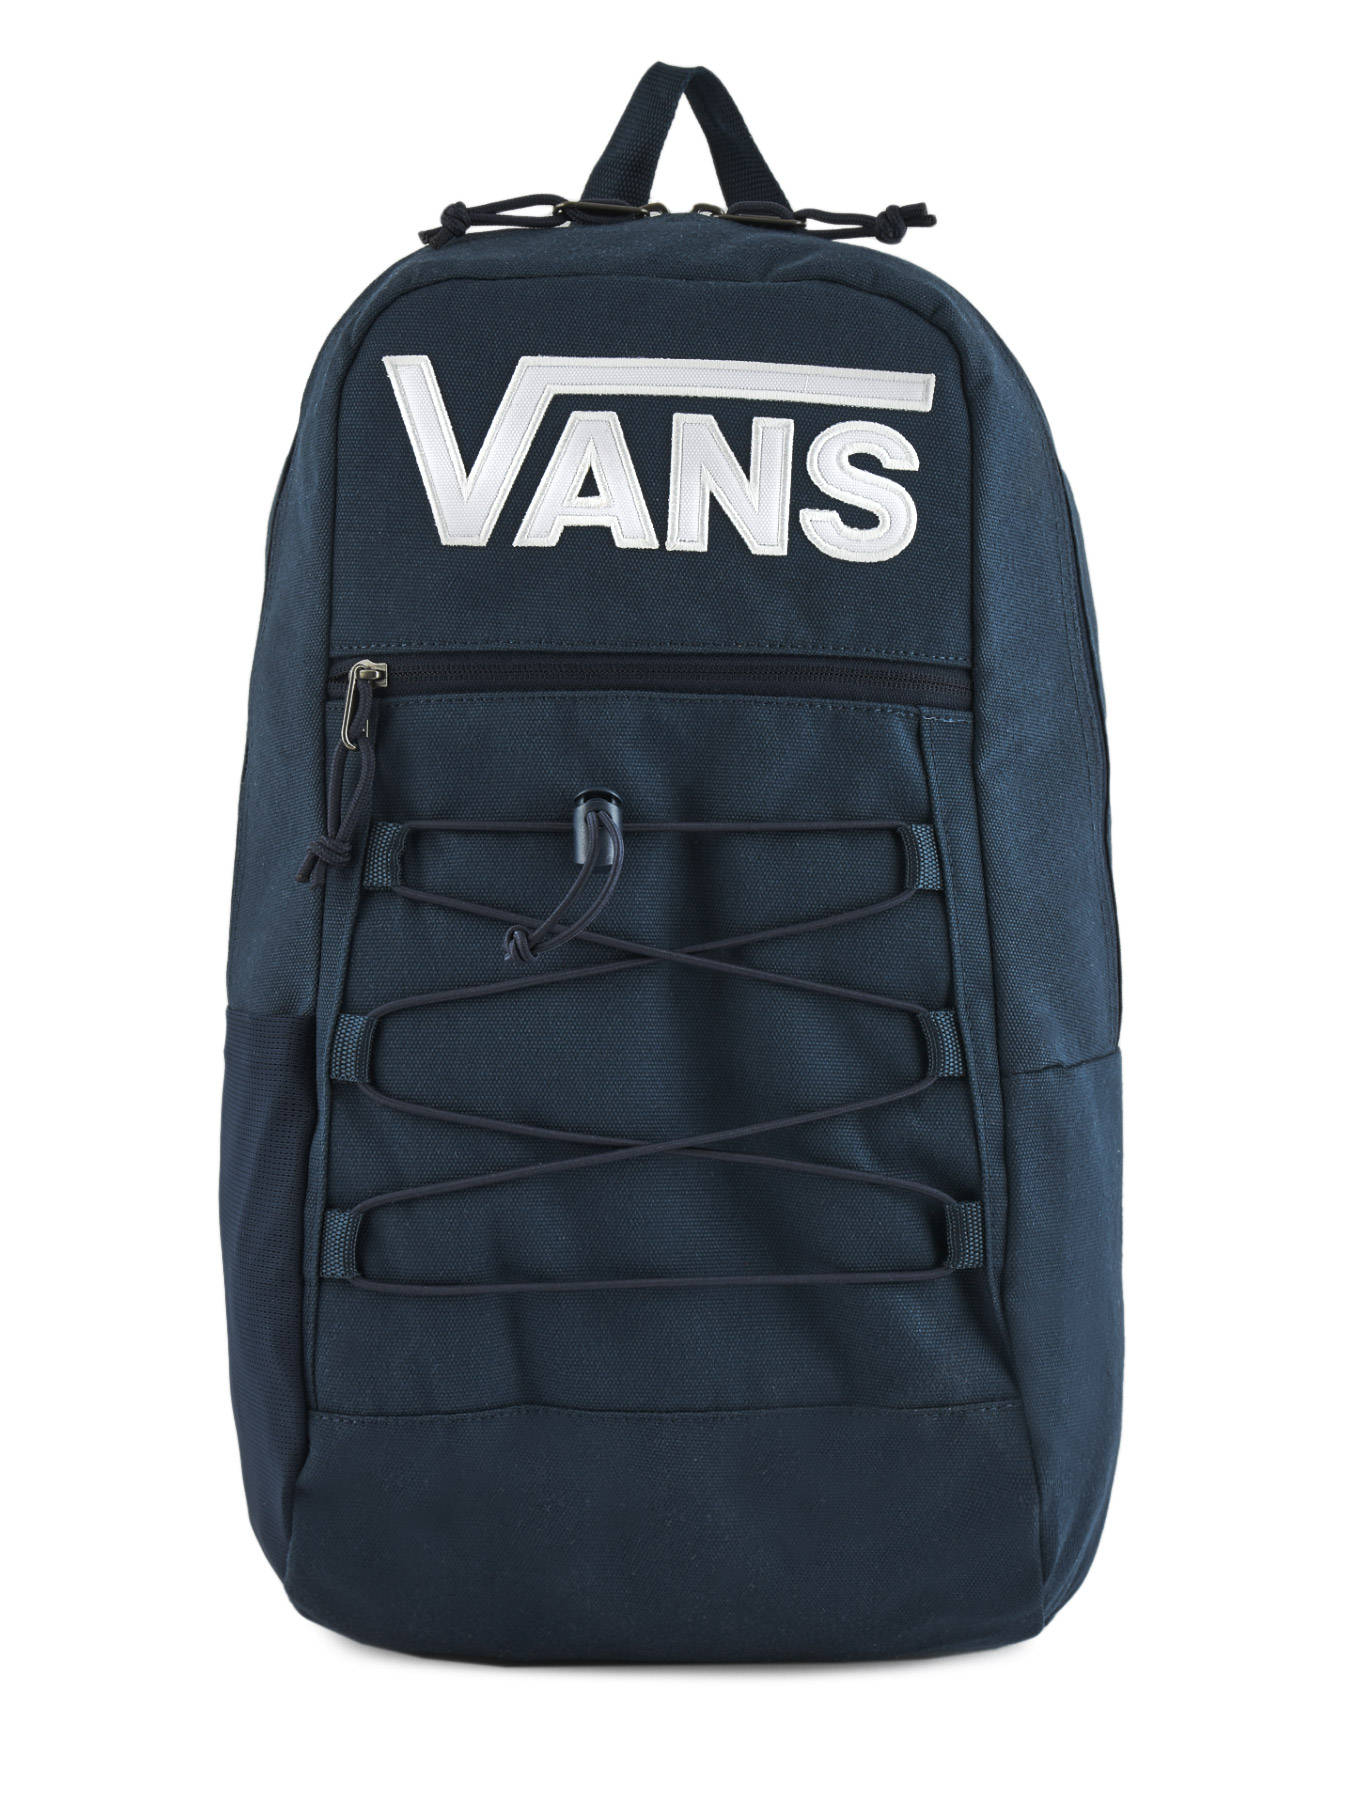 Backpack 1 compartment + PC 15'' VANS